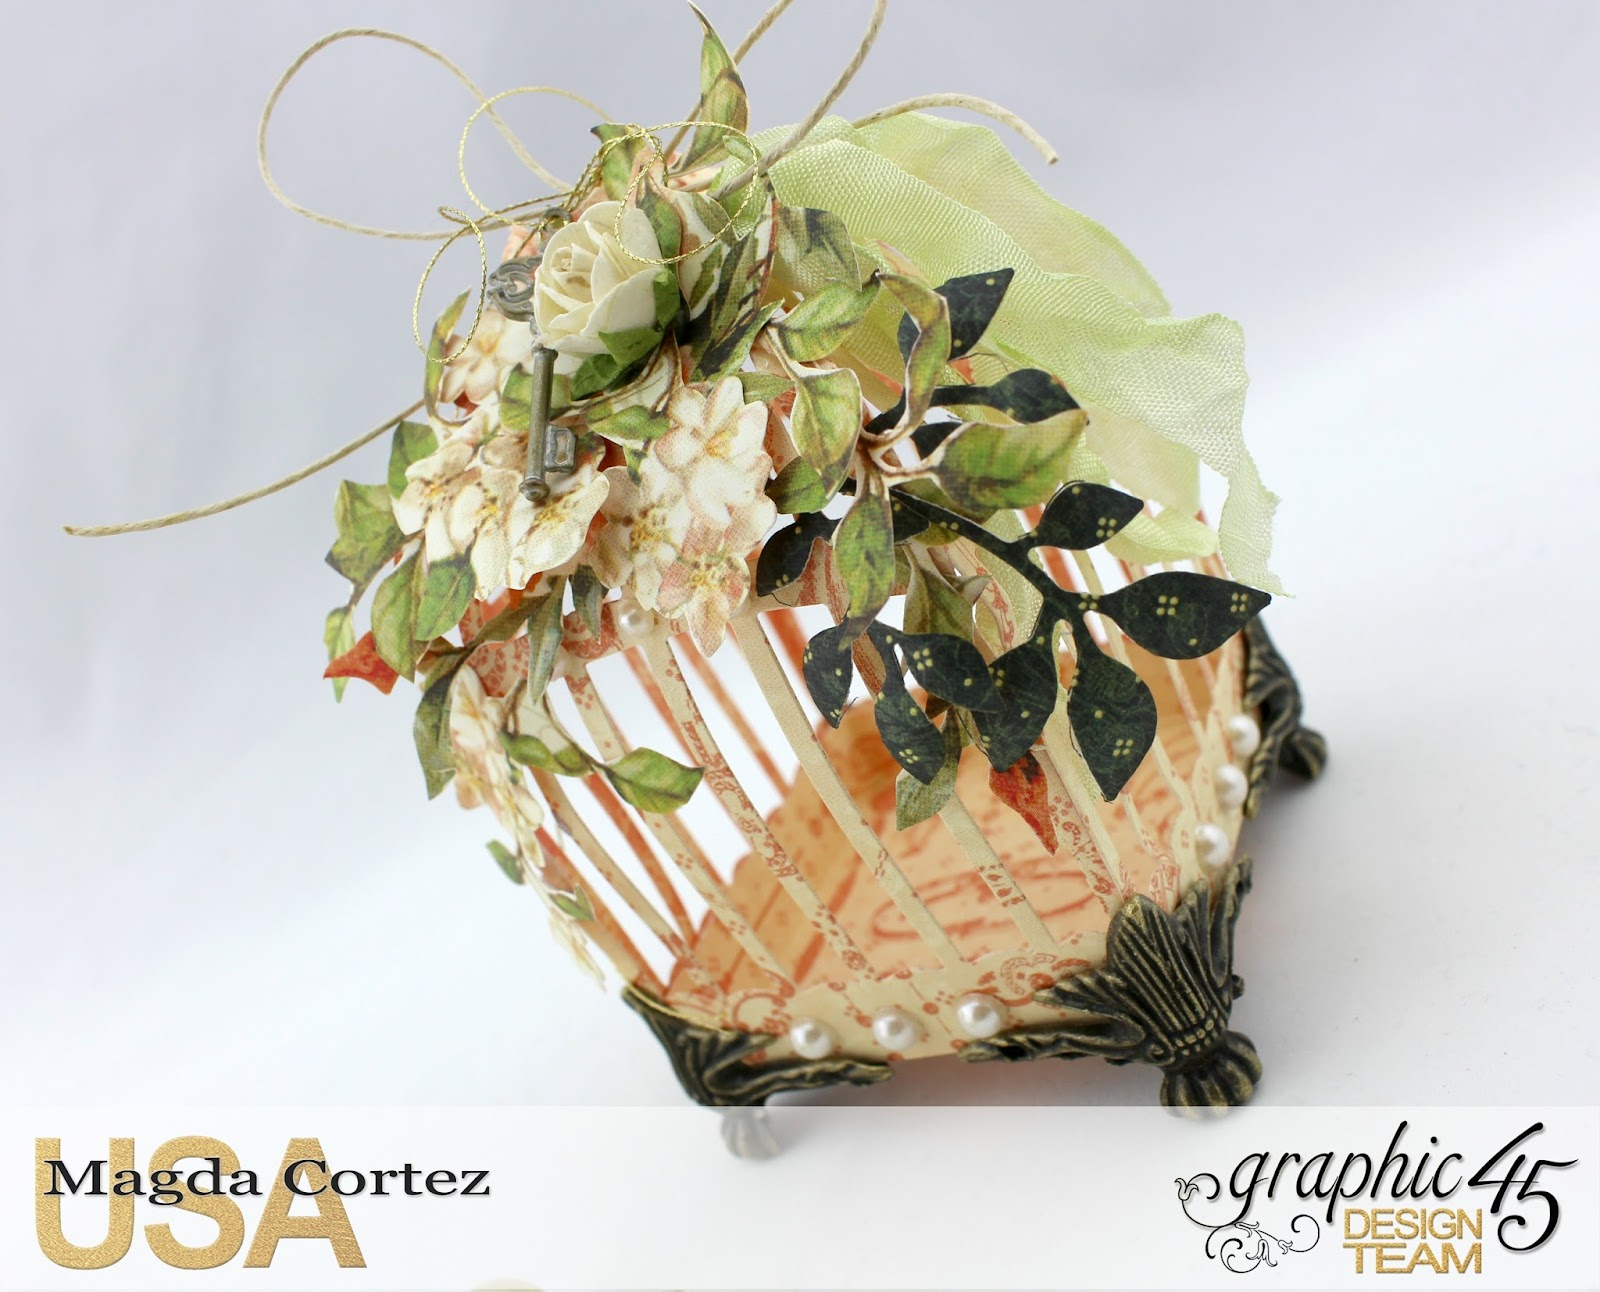 3D Birdcages Simply 45-Wedding Favor- Secret Garden By Magda Cortez, Product By G45, Photo 05 of 06, Project with Tutorial.jpg